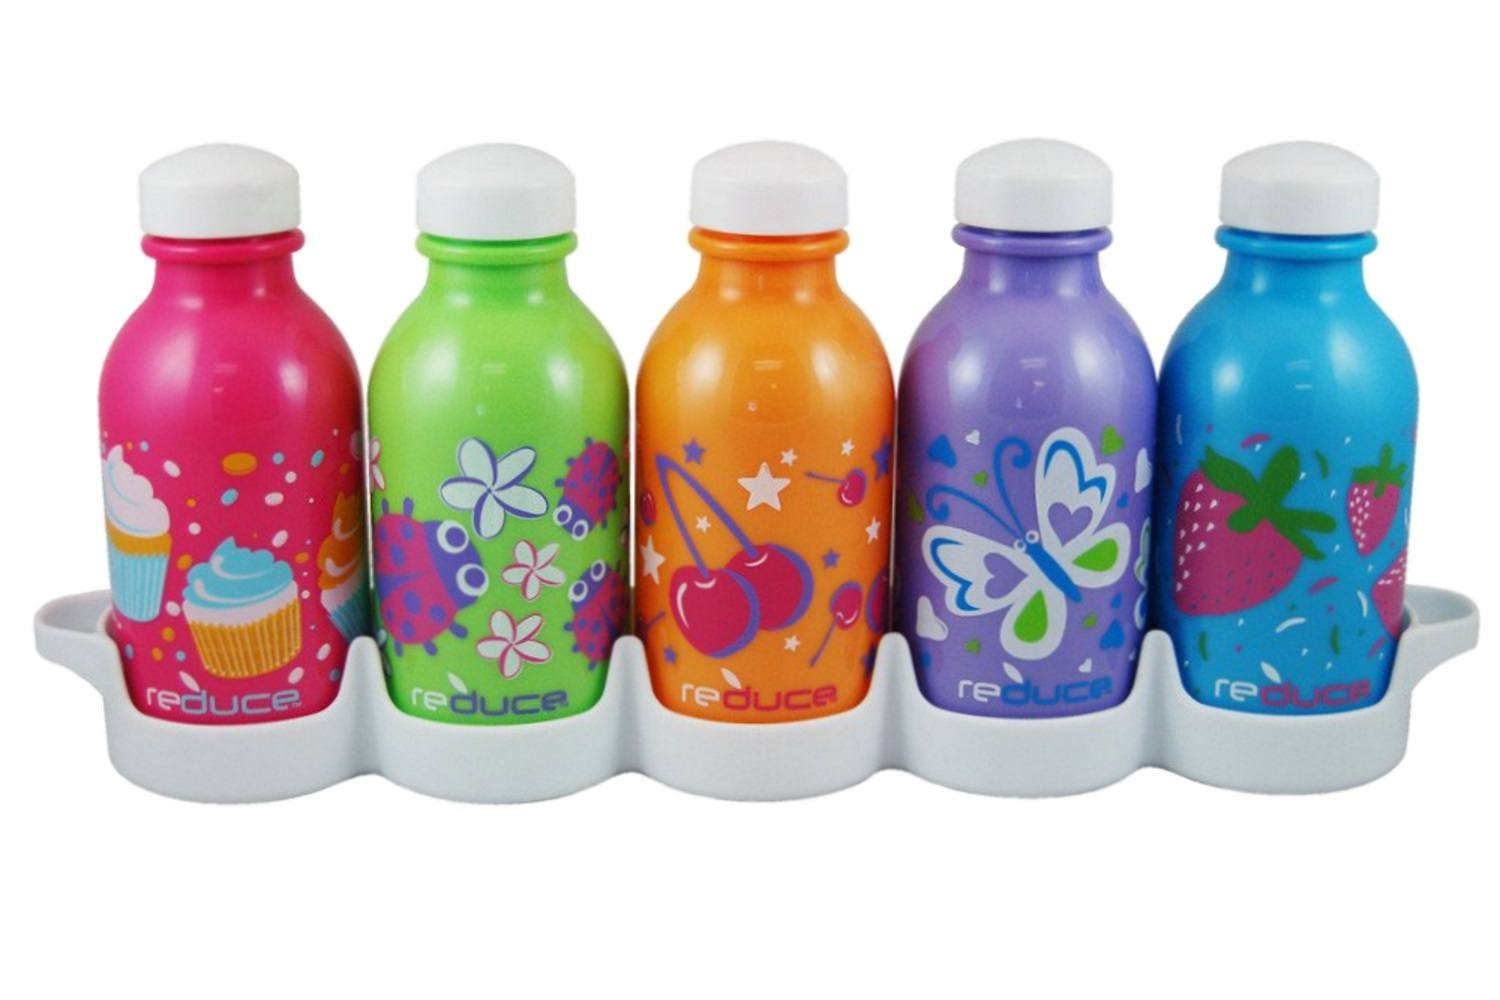 ROTuce 01309 Waterweek Kids Simply Sweet Waterbottle, Set of 5 by ROTuce